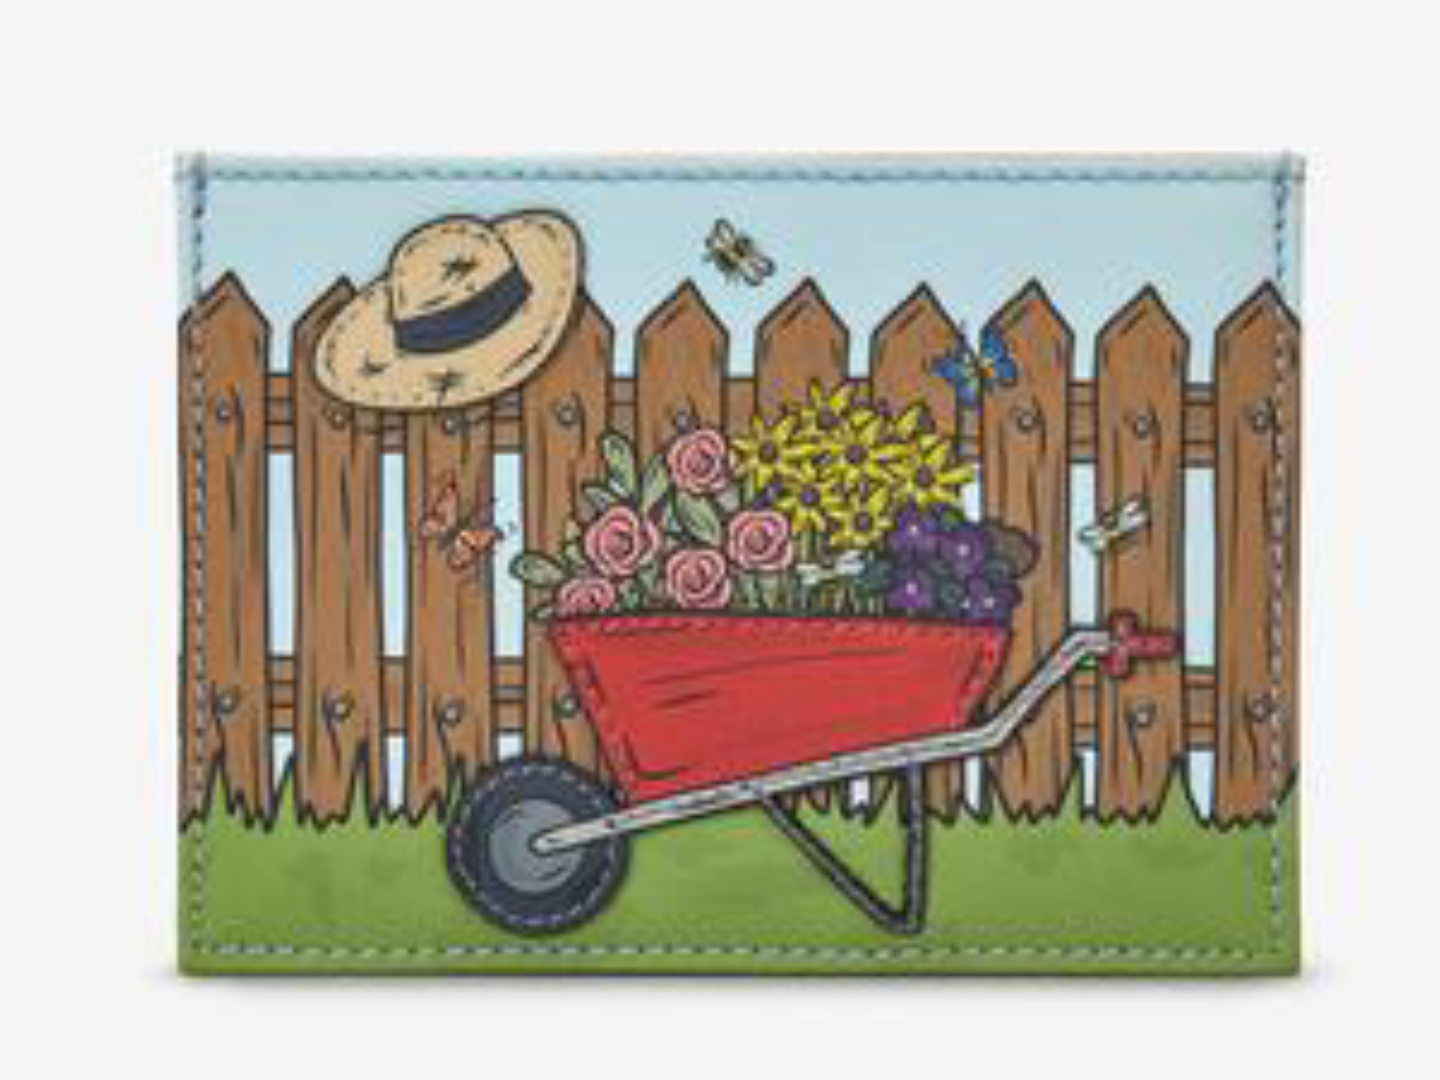 Flower Garden Leather Academy Card Holder - Quirky Giftz Ltd